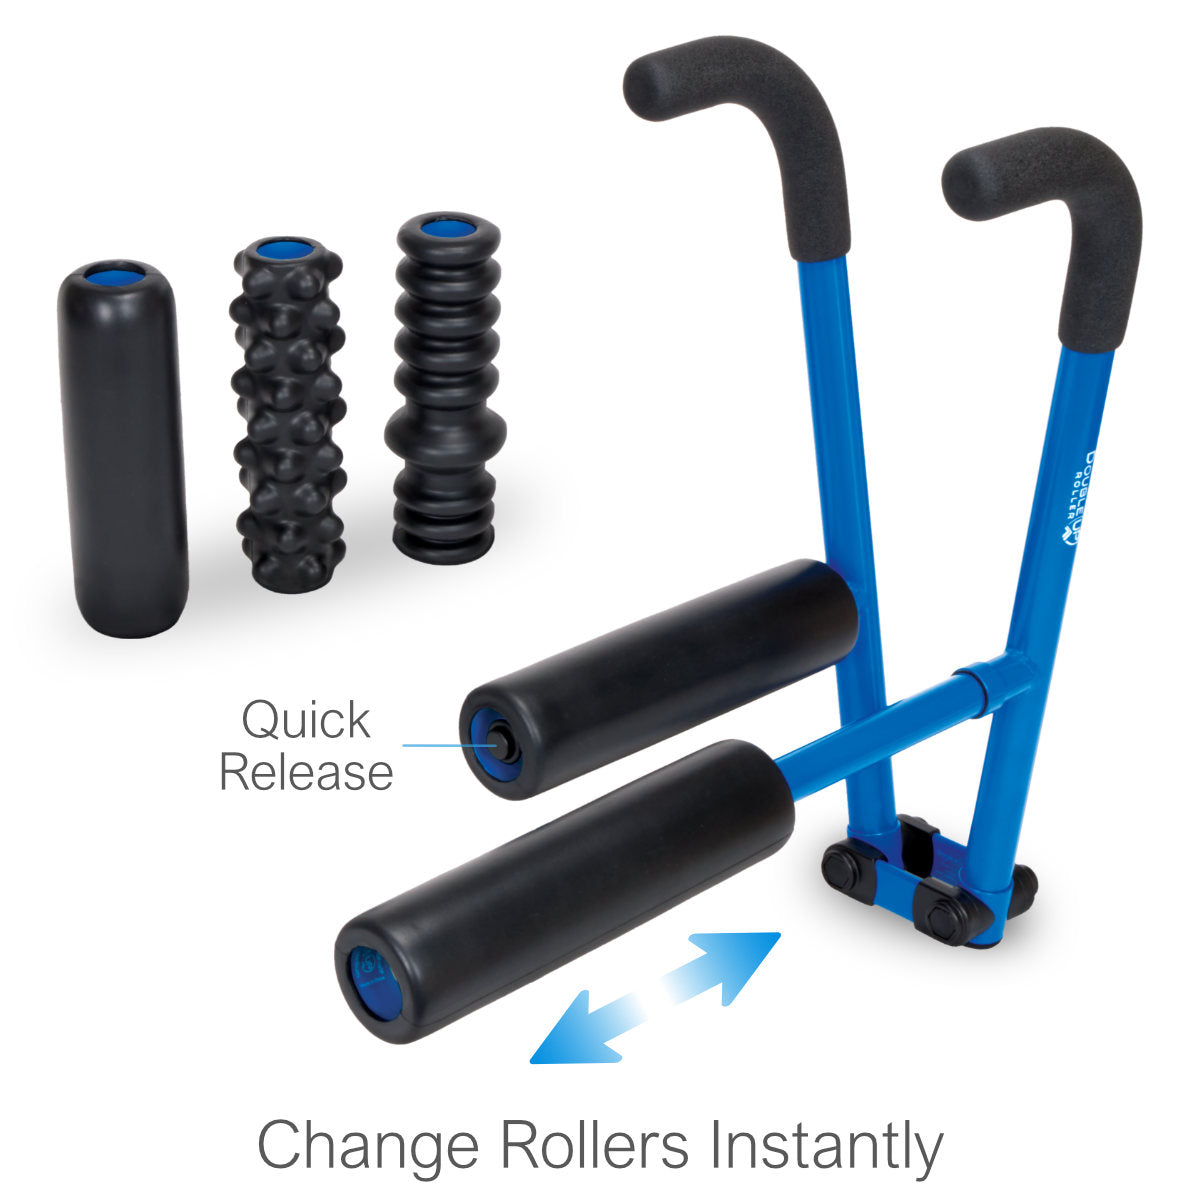 DoubleUP 3-Pack with WarmUP, LoosenUP and BreakUP Rollers